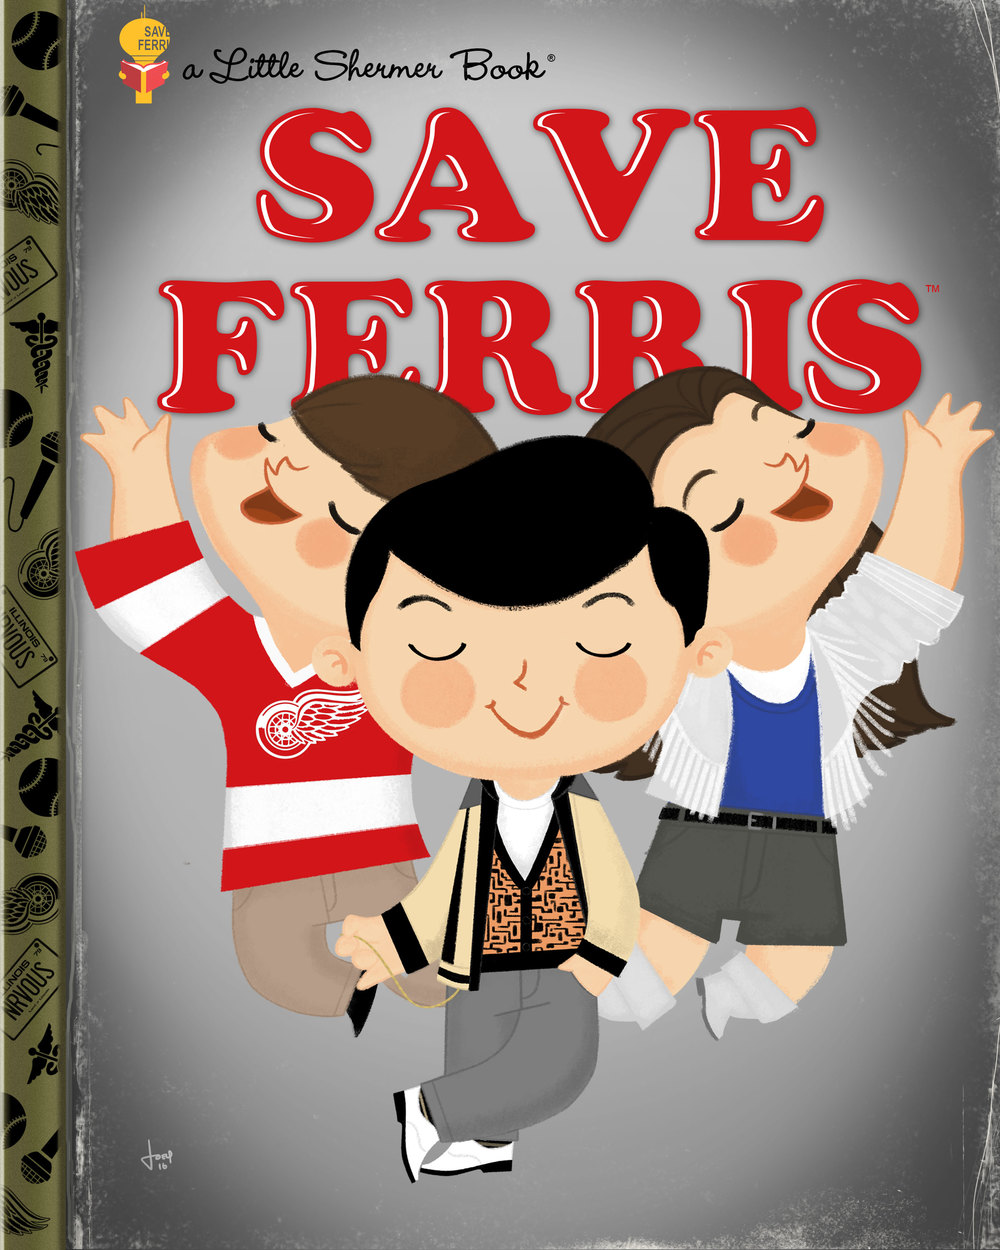 SaveFerris.jpg